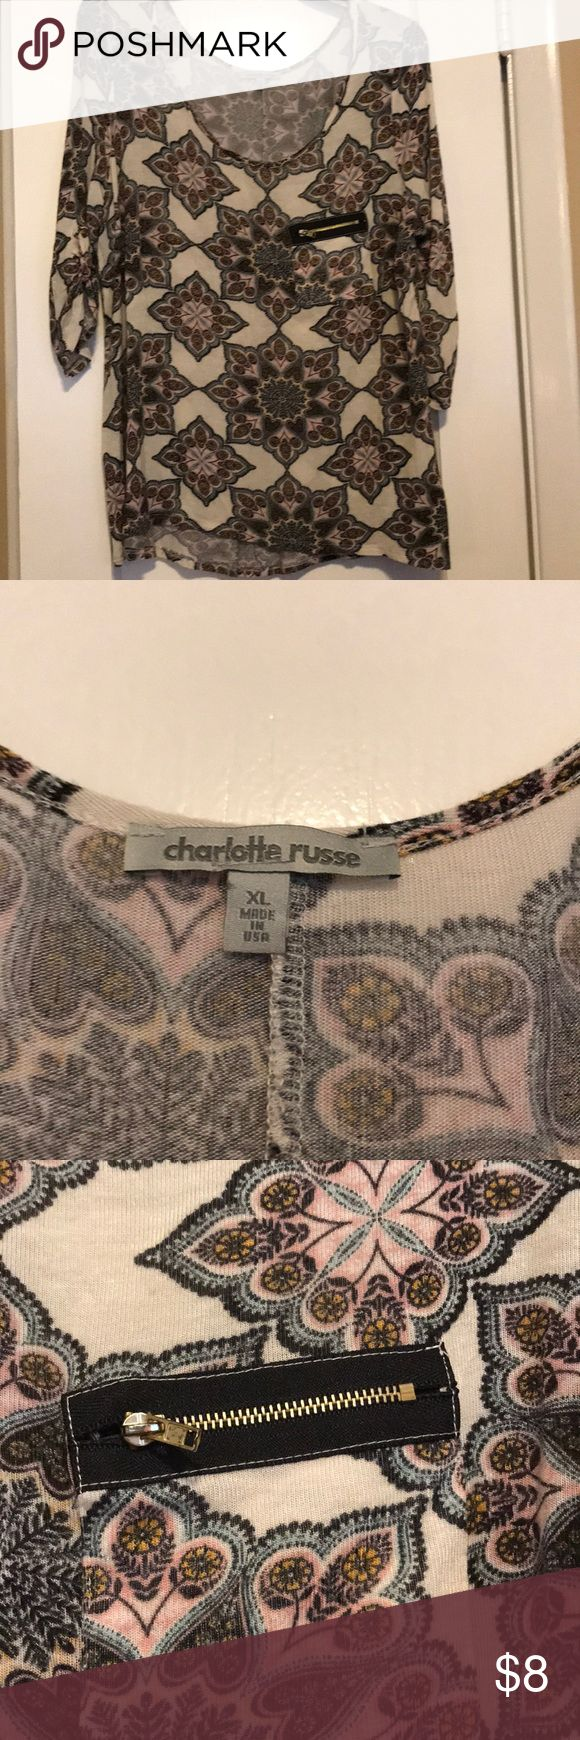 Casual blouse! Super comfy, Charlotte rouse! Charlotte Russe Tops Blouses